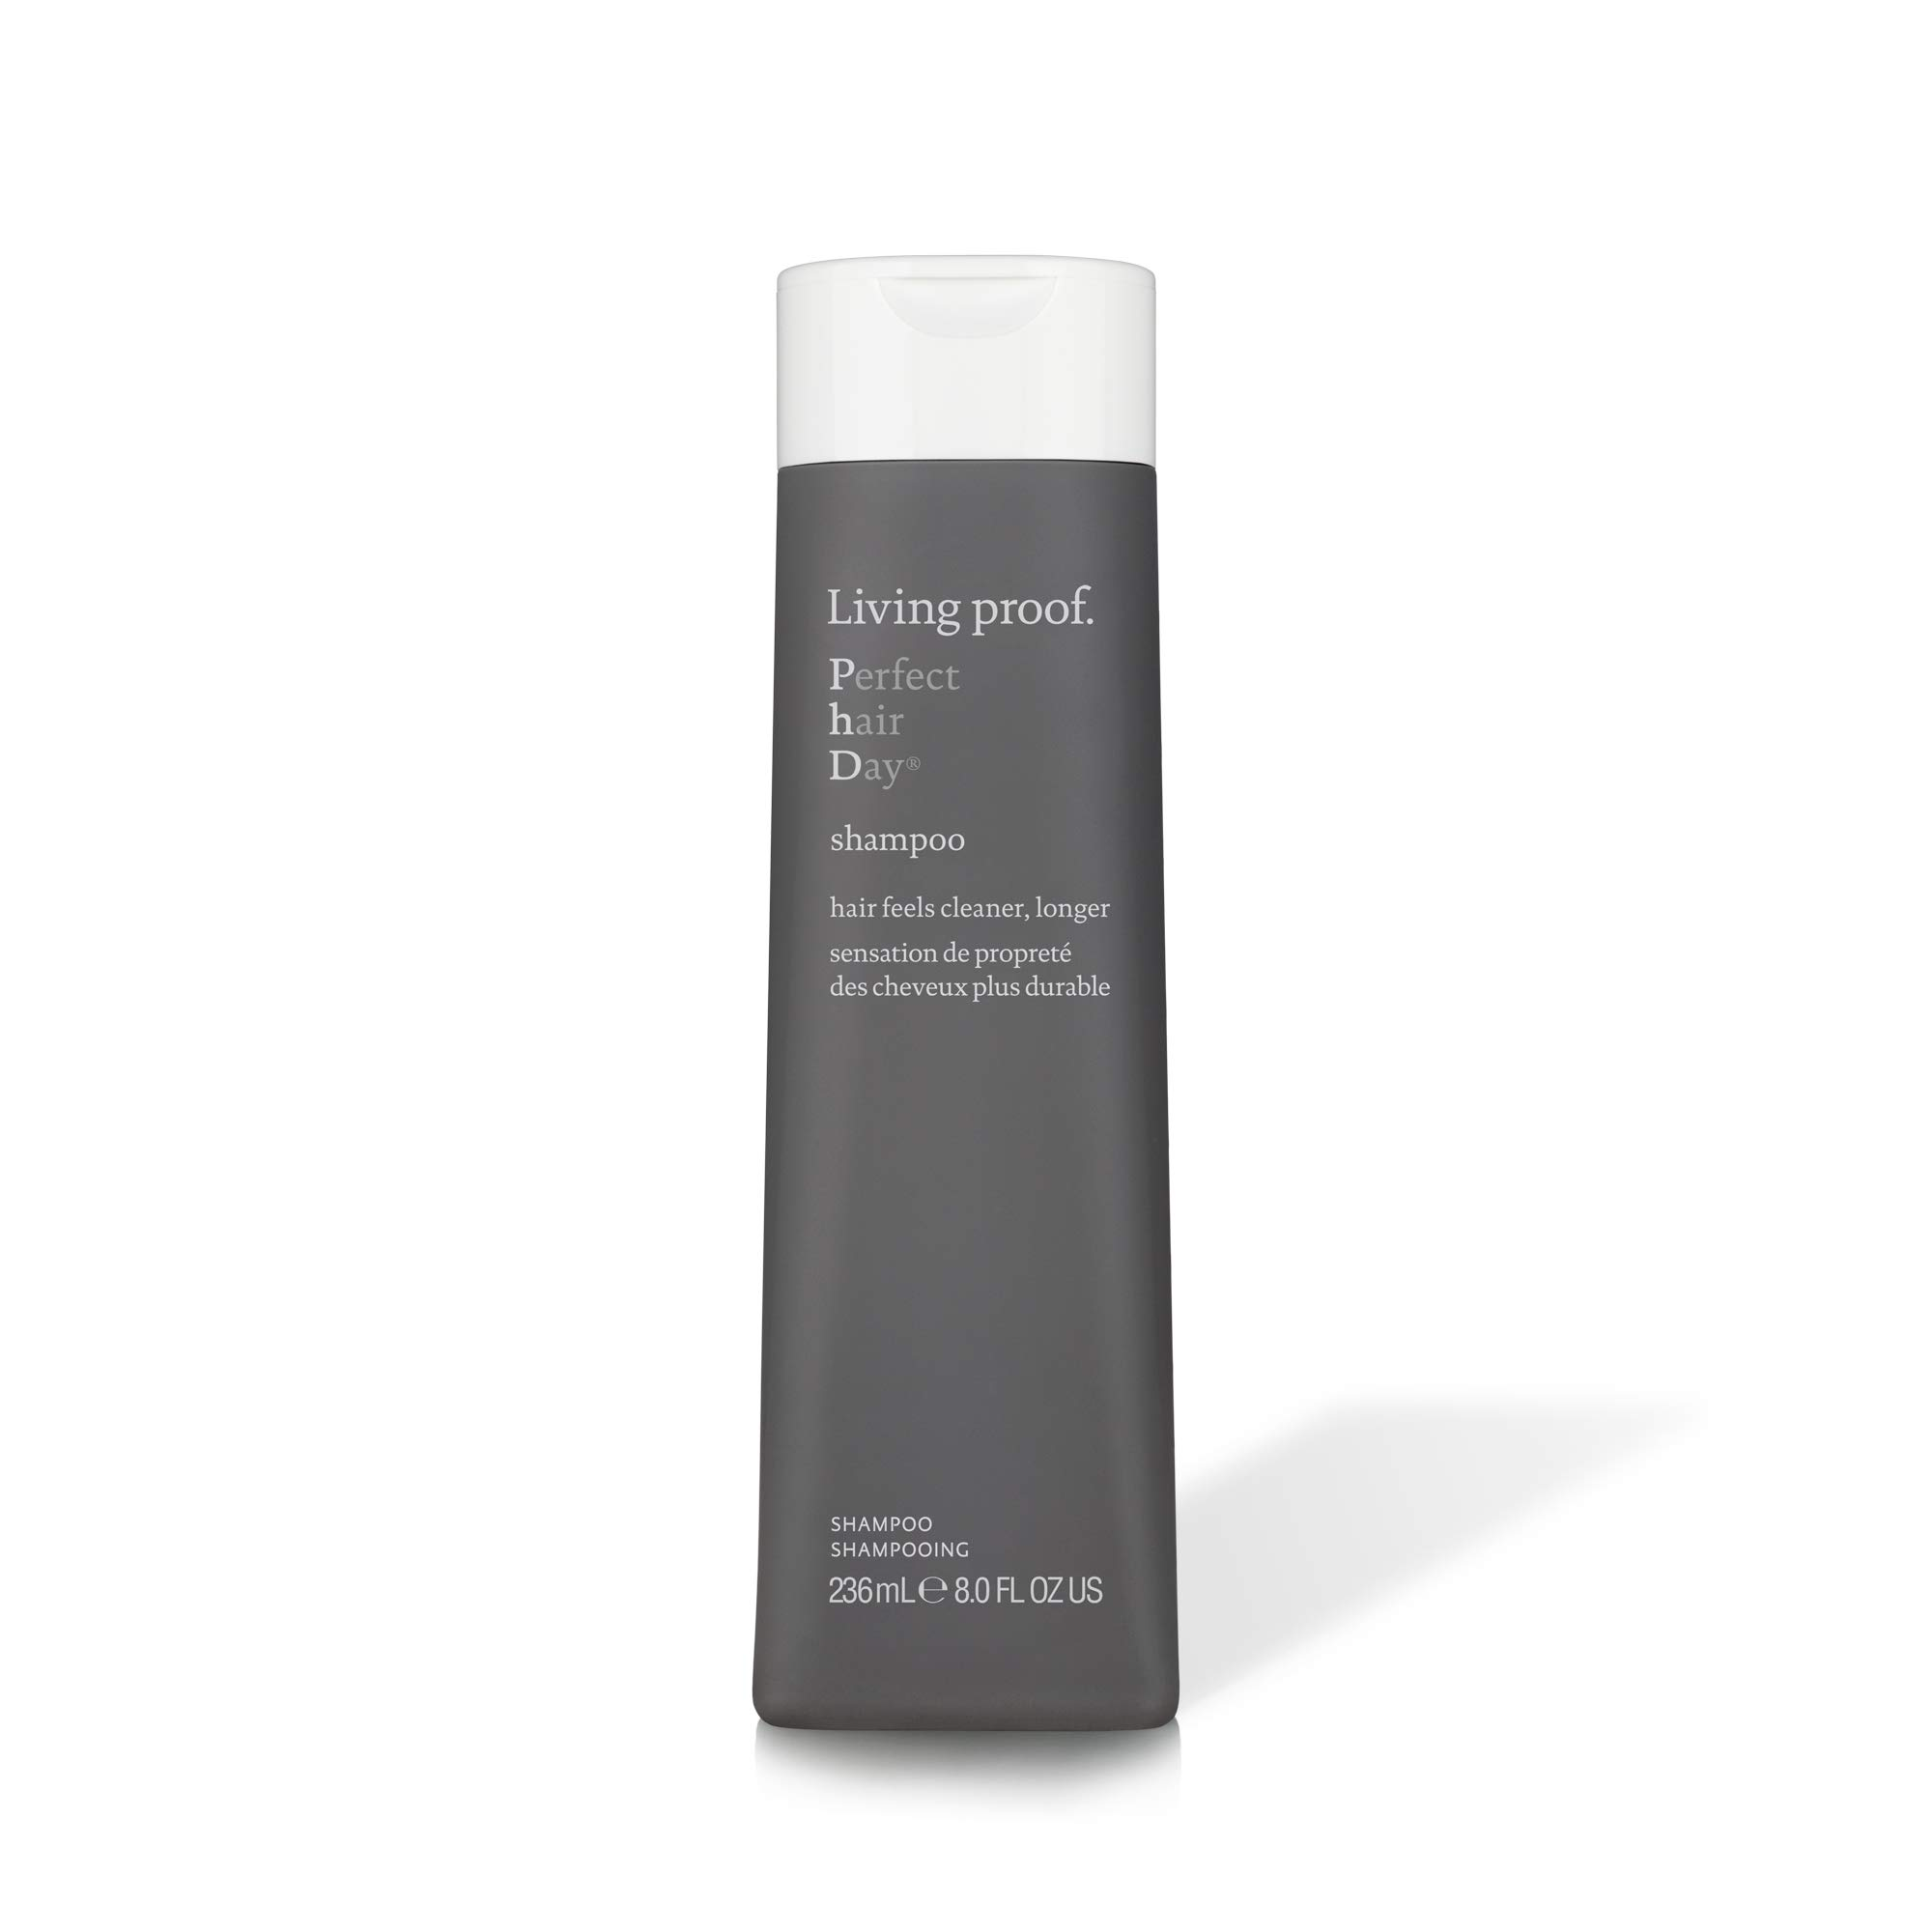 Living Proof Perfect Hair Day Shampoo, 8 oz by Living Proof